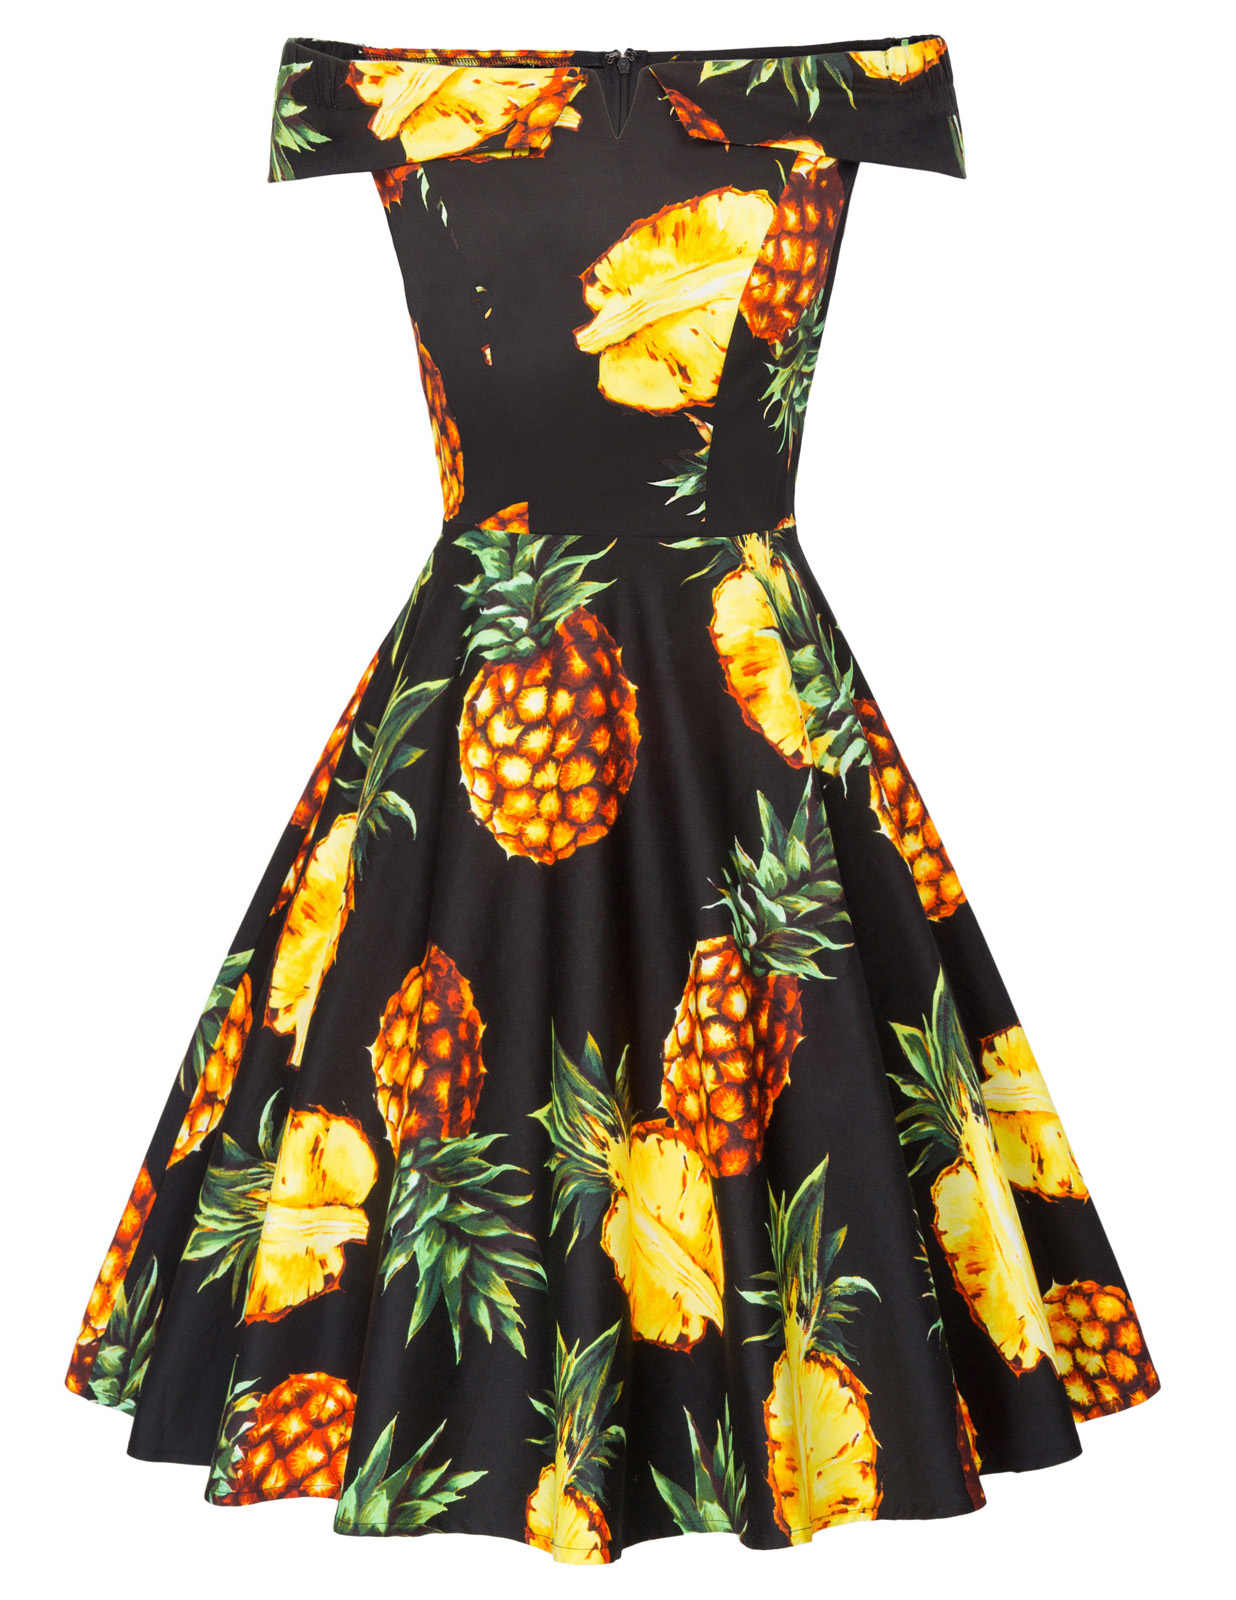 efcc08f360845 BP Vintage Women Pineapple Pattern dresses summer tropical clothing sexy  Off Shoulder Cotton party knee length A-Line Dress lady